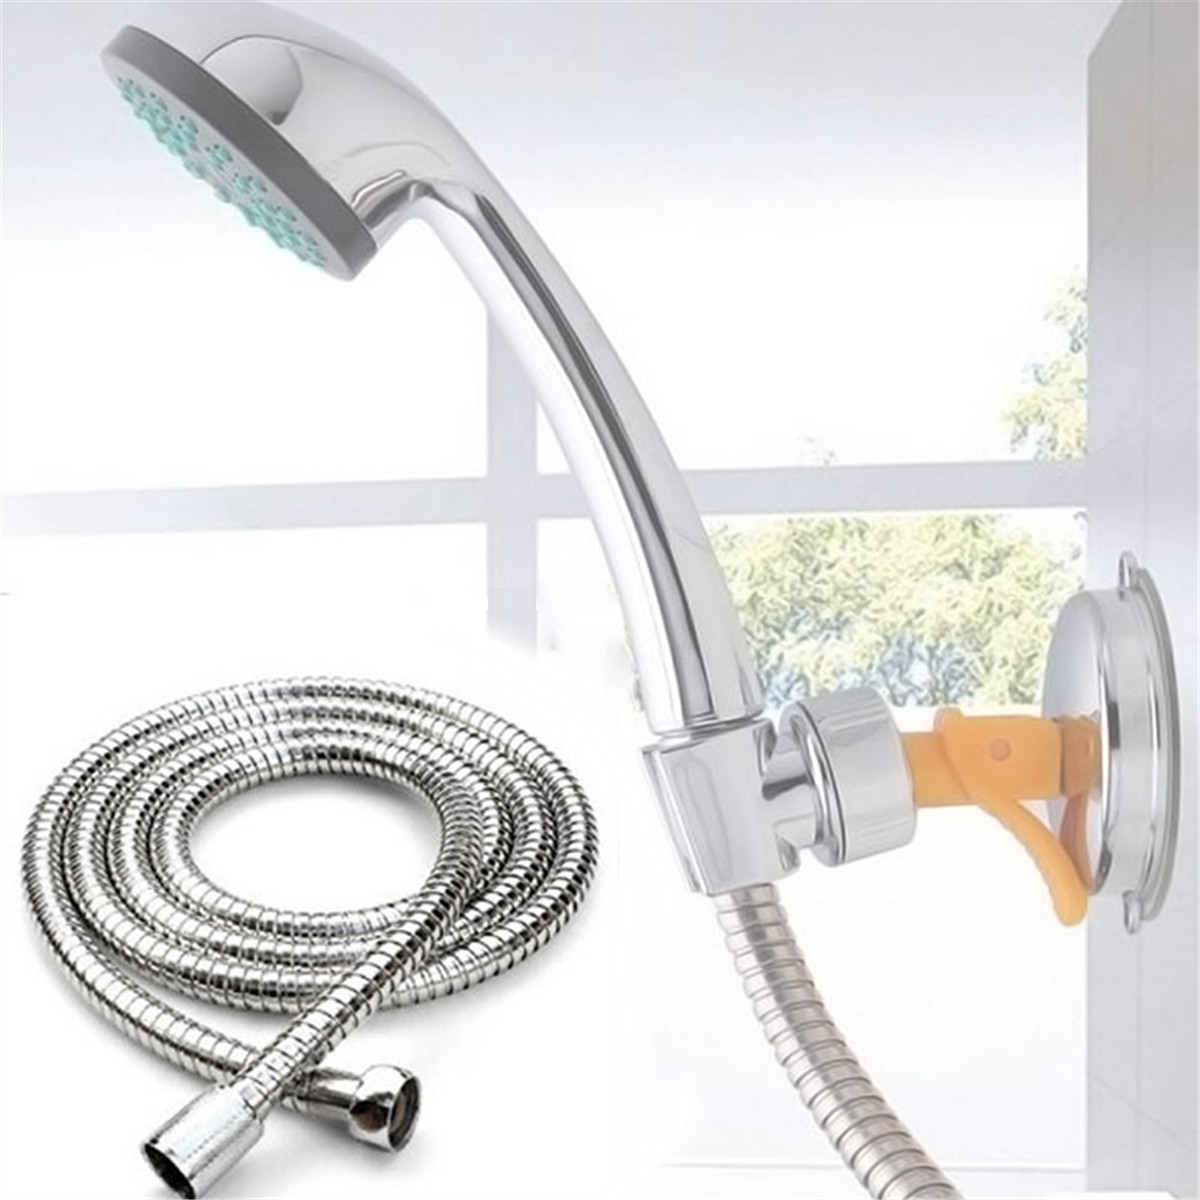 1.5m Flexible Shower Hose Extension Stainless Steel Chrome Plumbing Hoses Soft Pipes Bathroom Heater Water Head Pipe Connector